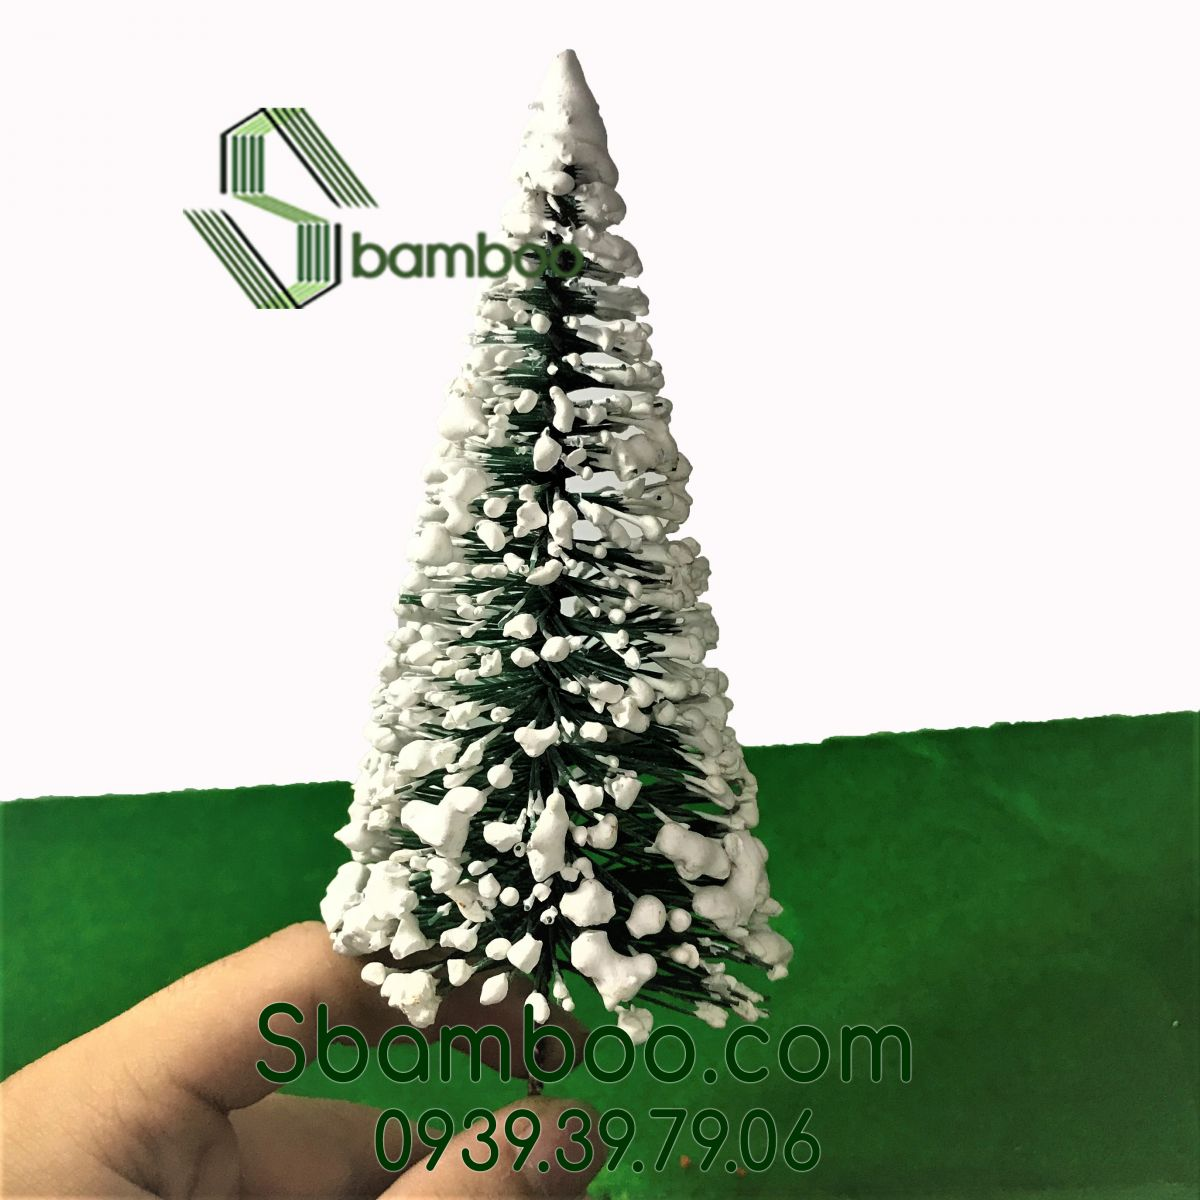 CHRISTMAS TREE MODEL SBAMBOO 18CM